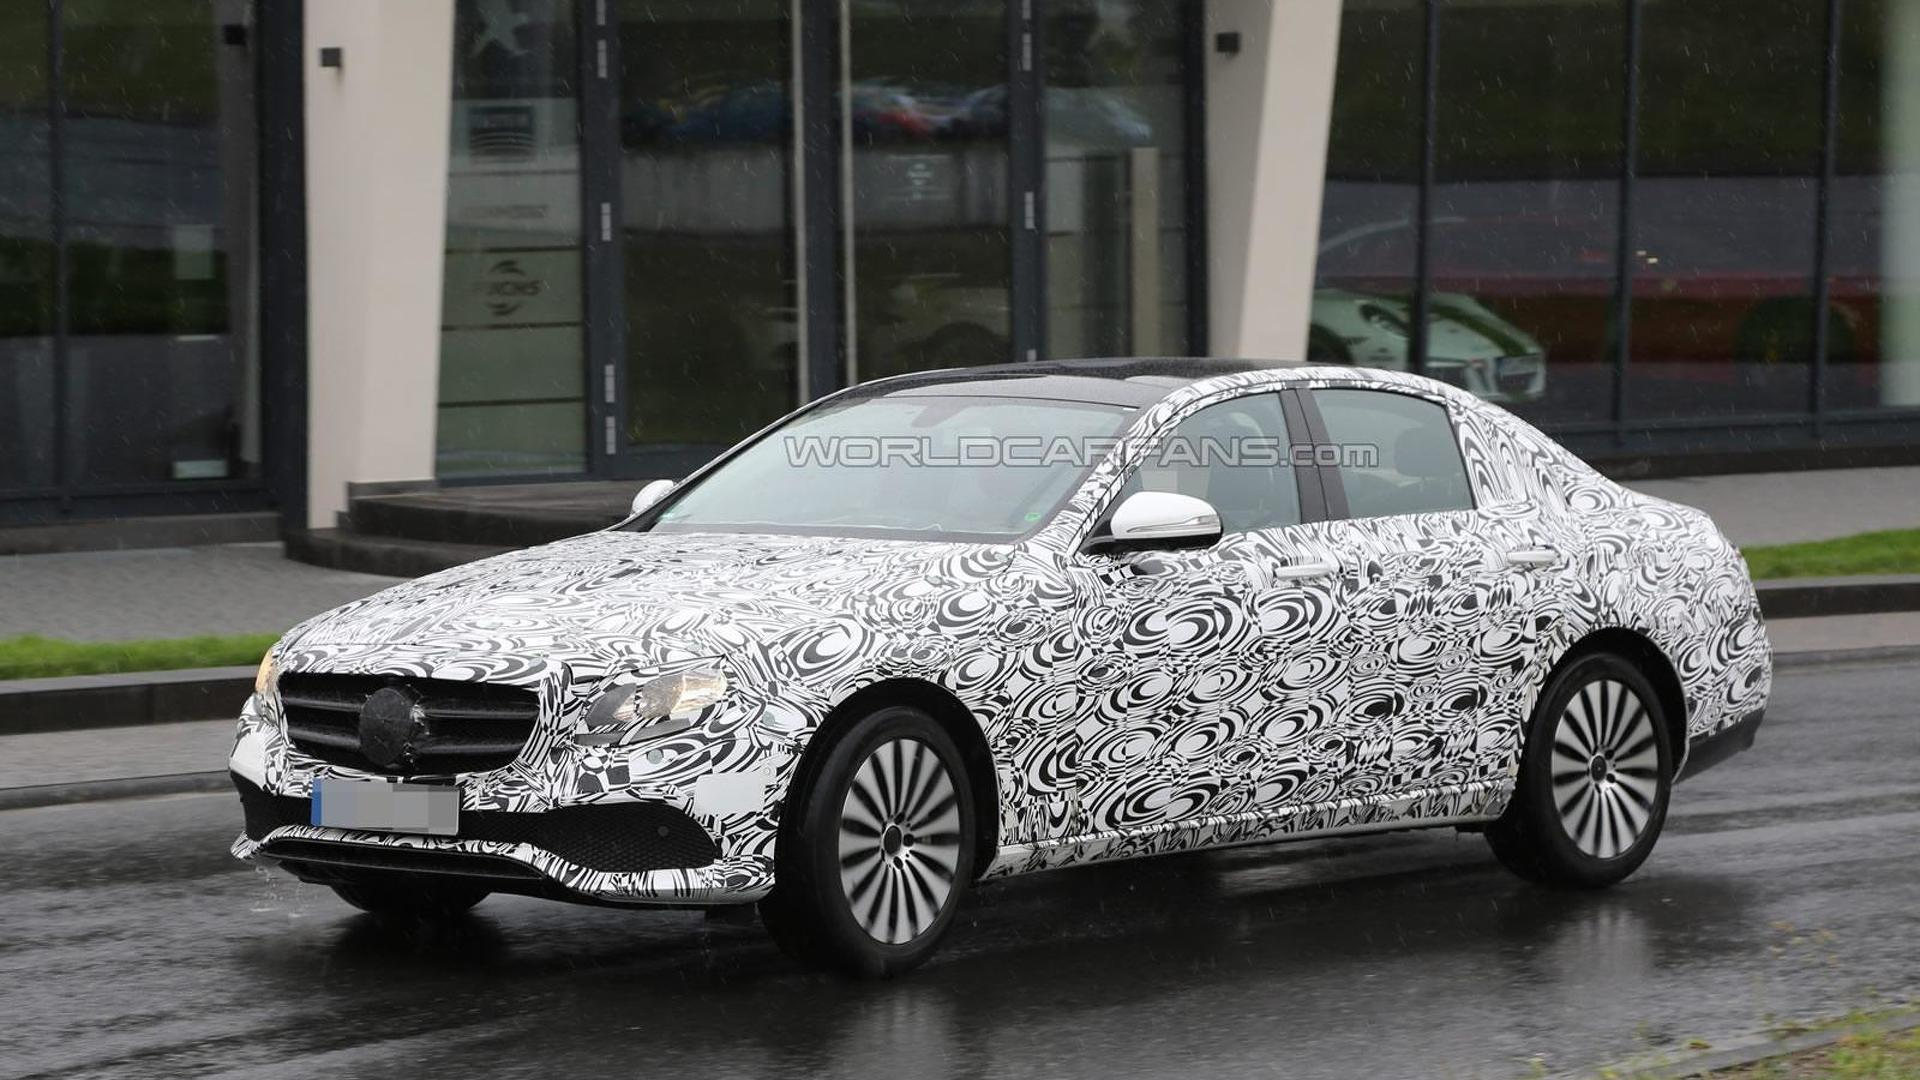 Latest 2016 Mercedes Benz E Cl Spy Images Reveal More Of The Front Fascia